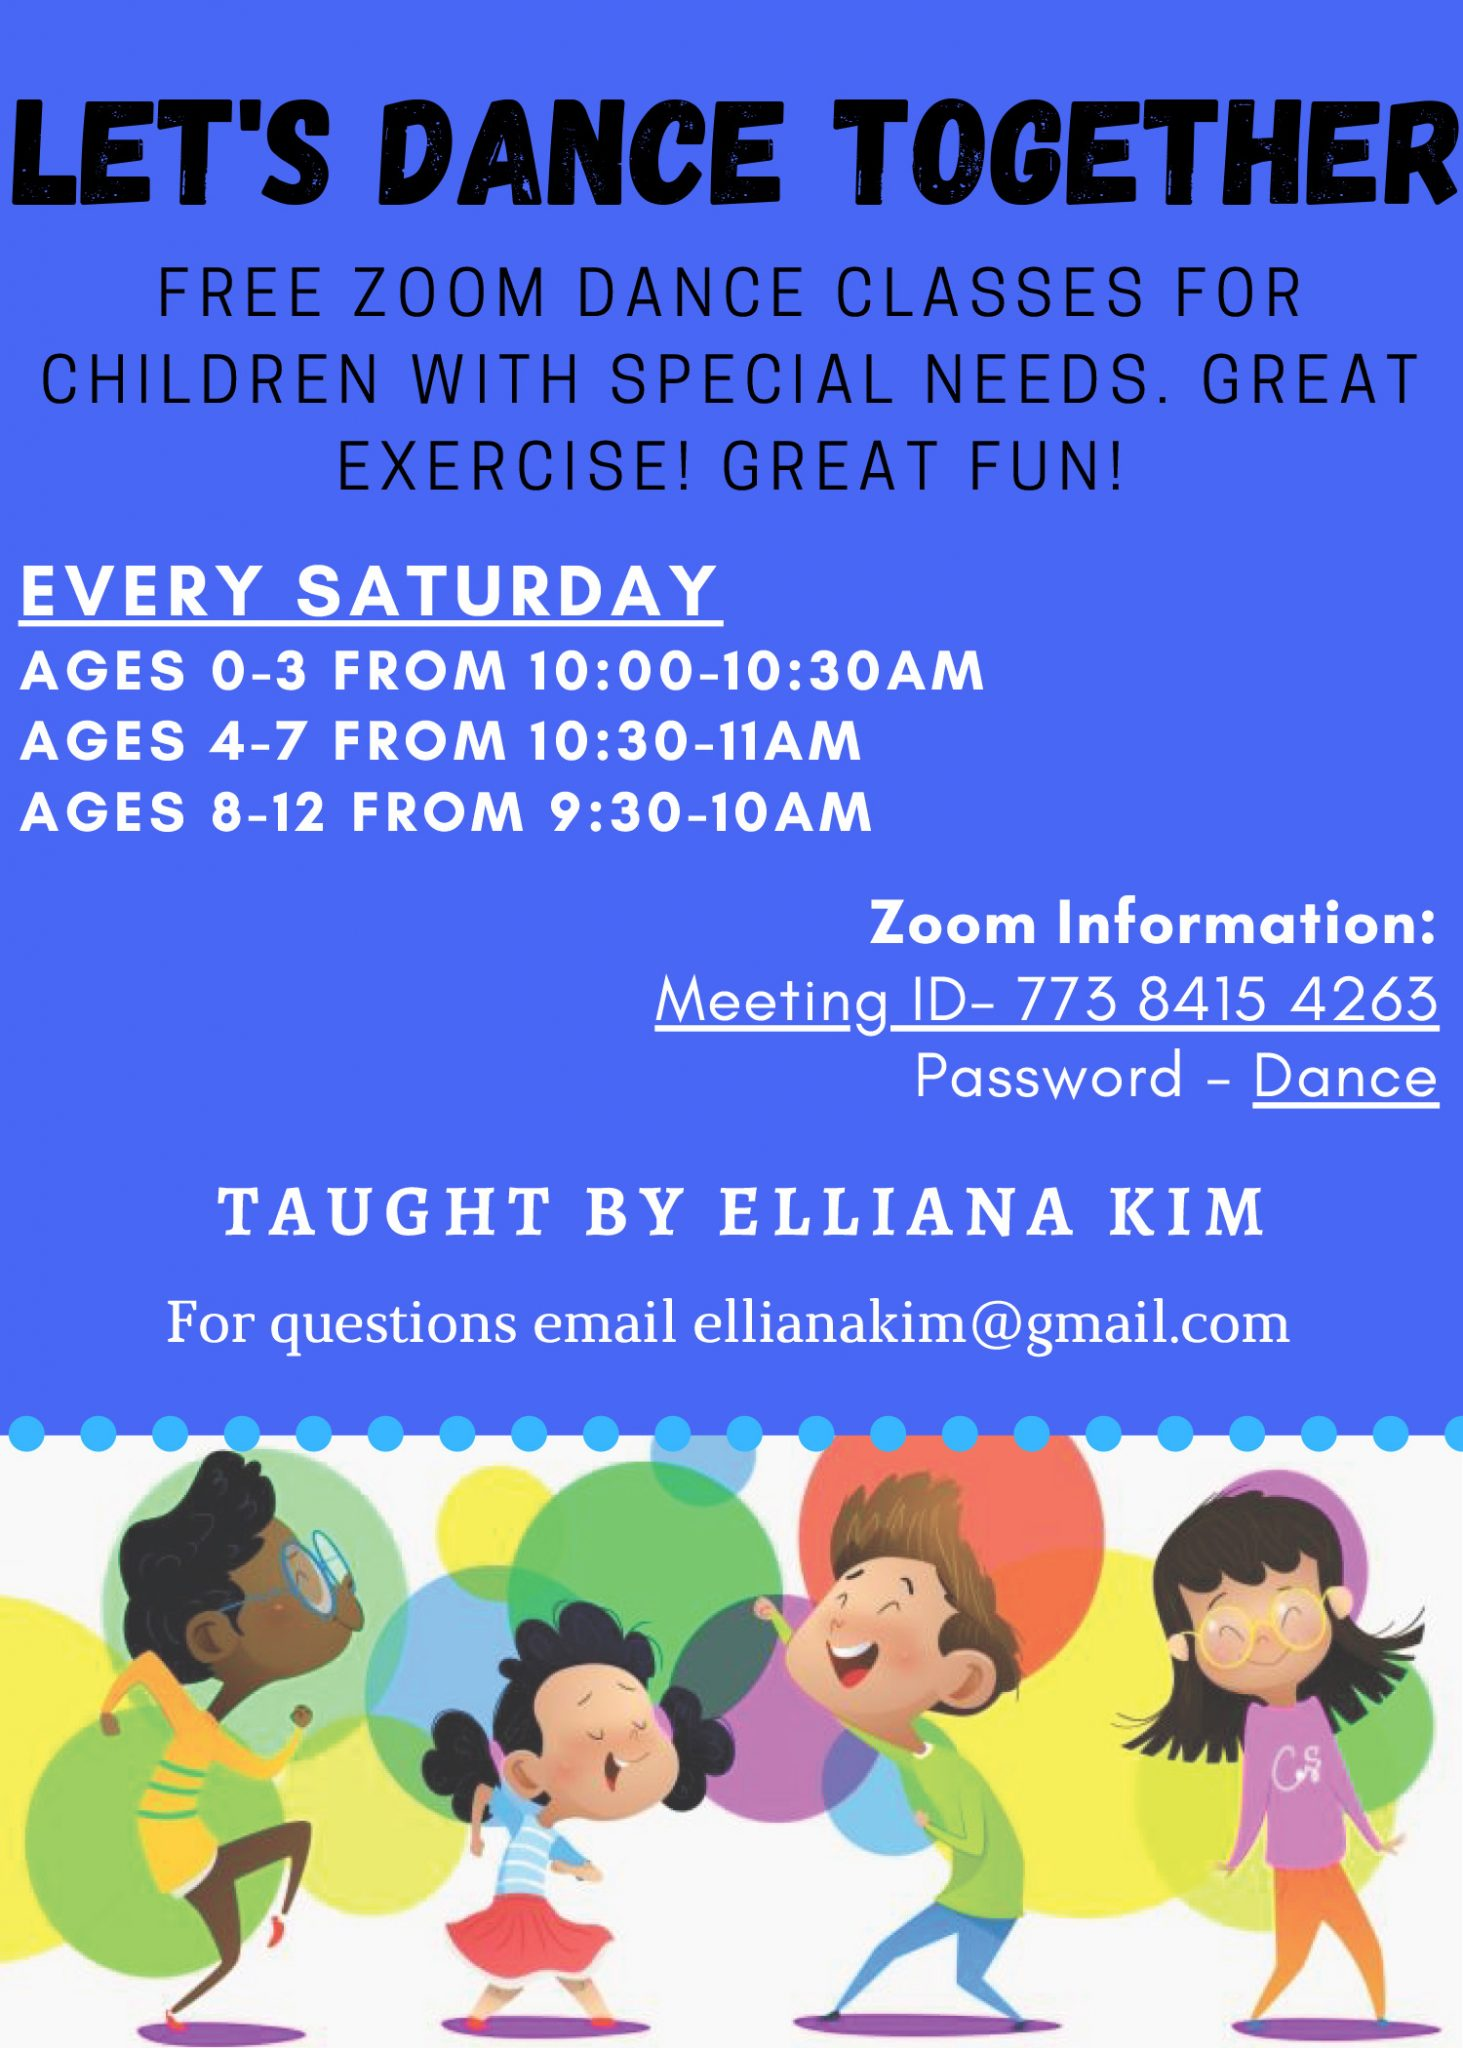 Dance Class for Toddlers with Special Needs